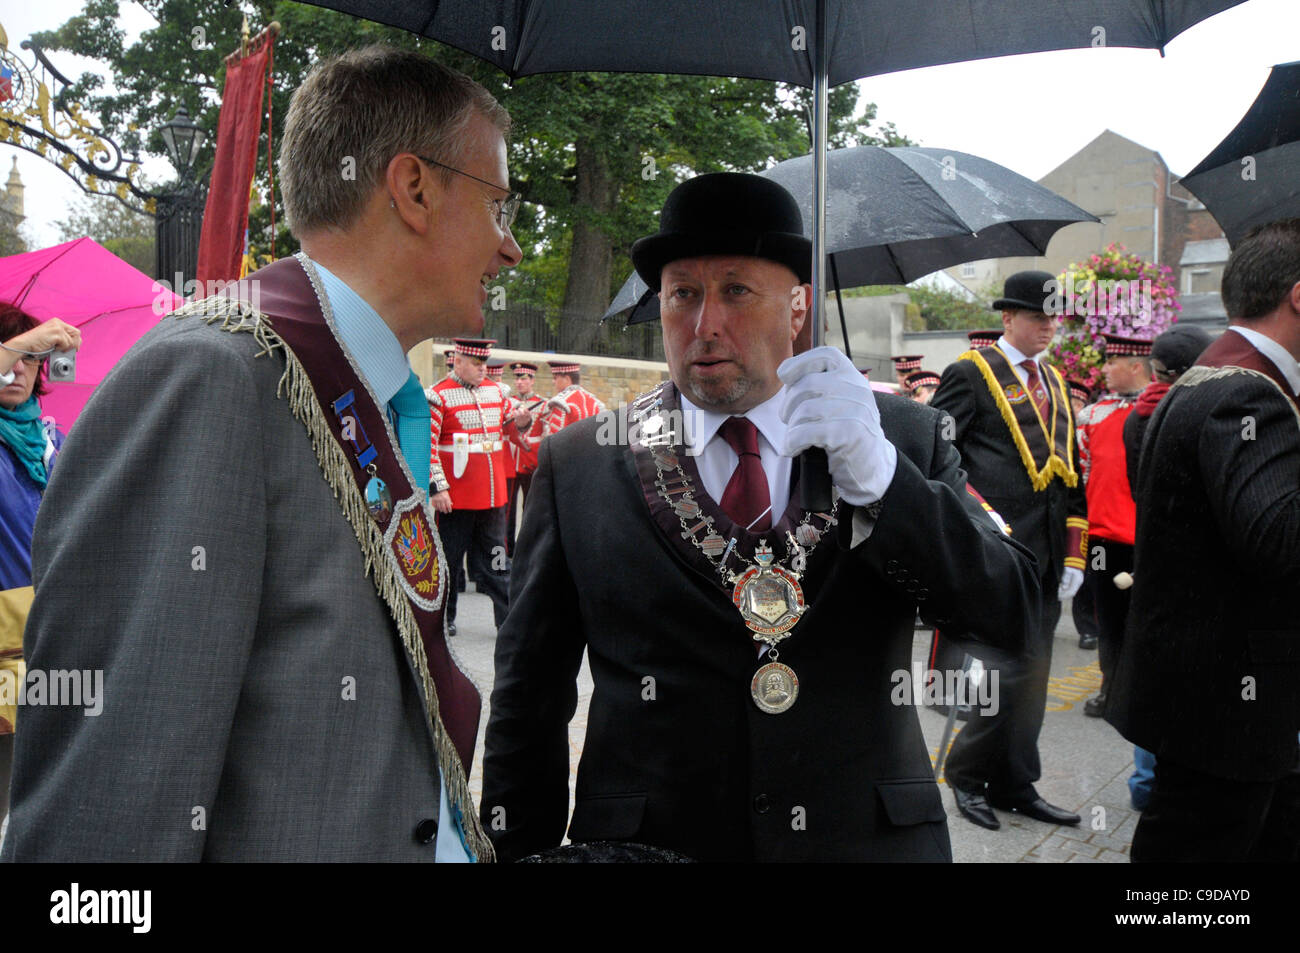 Democratic Unionist Party (DUP) MP Gregory Campbell (left) with Apprentice Boys of Derry governor Jim Brownlee. - Stock Image